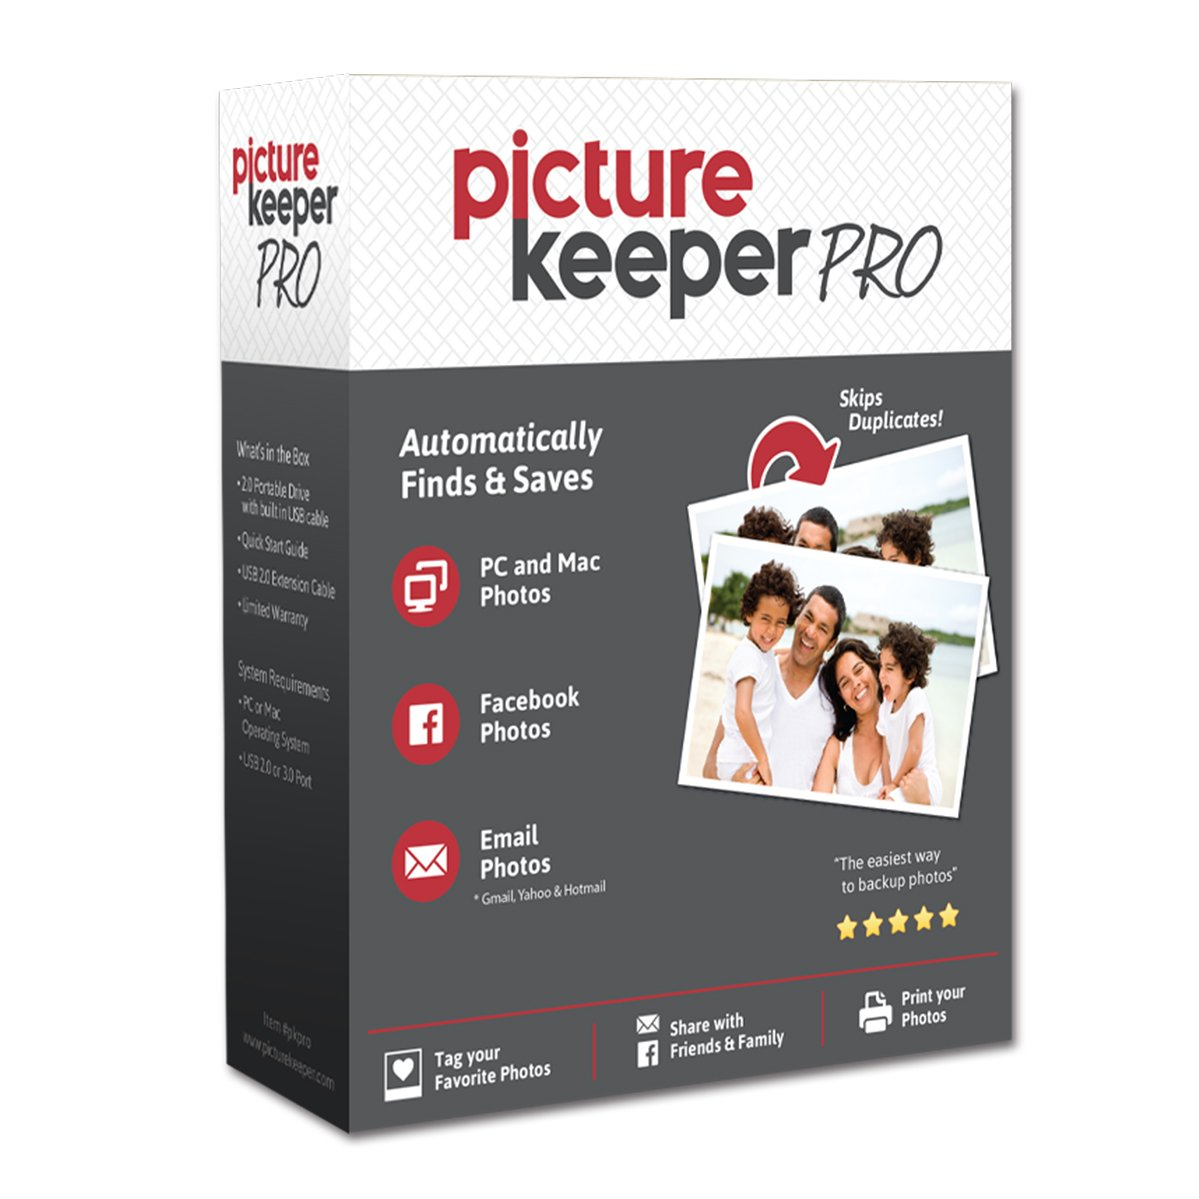 Picture Keeper PRO 500GB Portable Flash Drive Photo Music Video File Backup and Storage USB Device for PC and MAC Computers